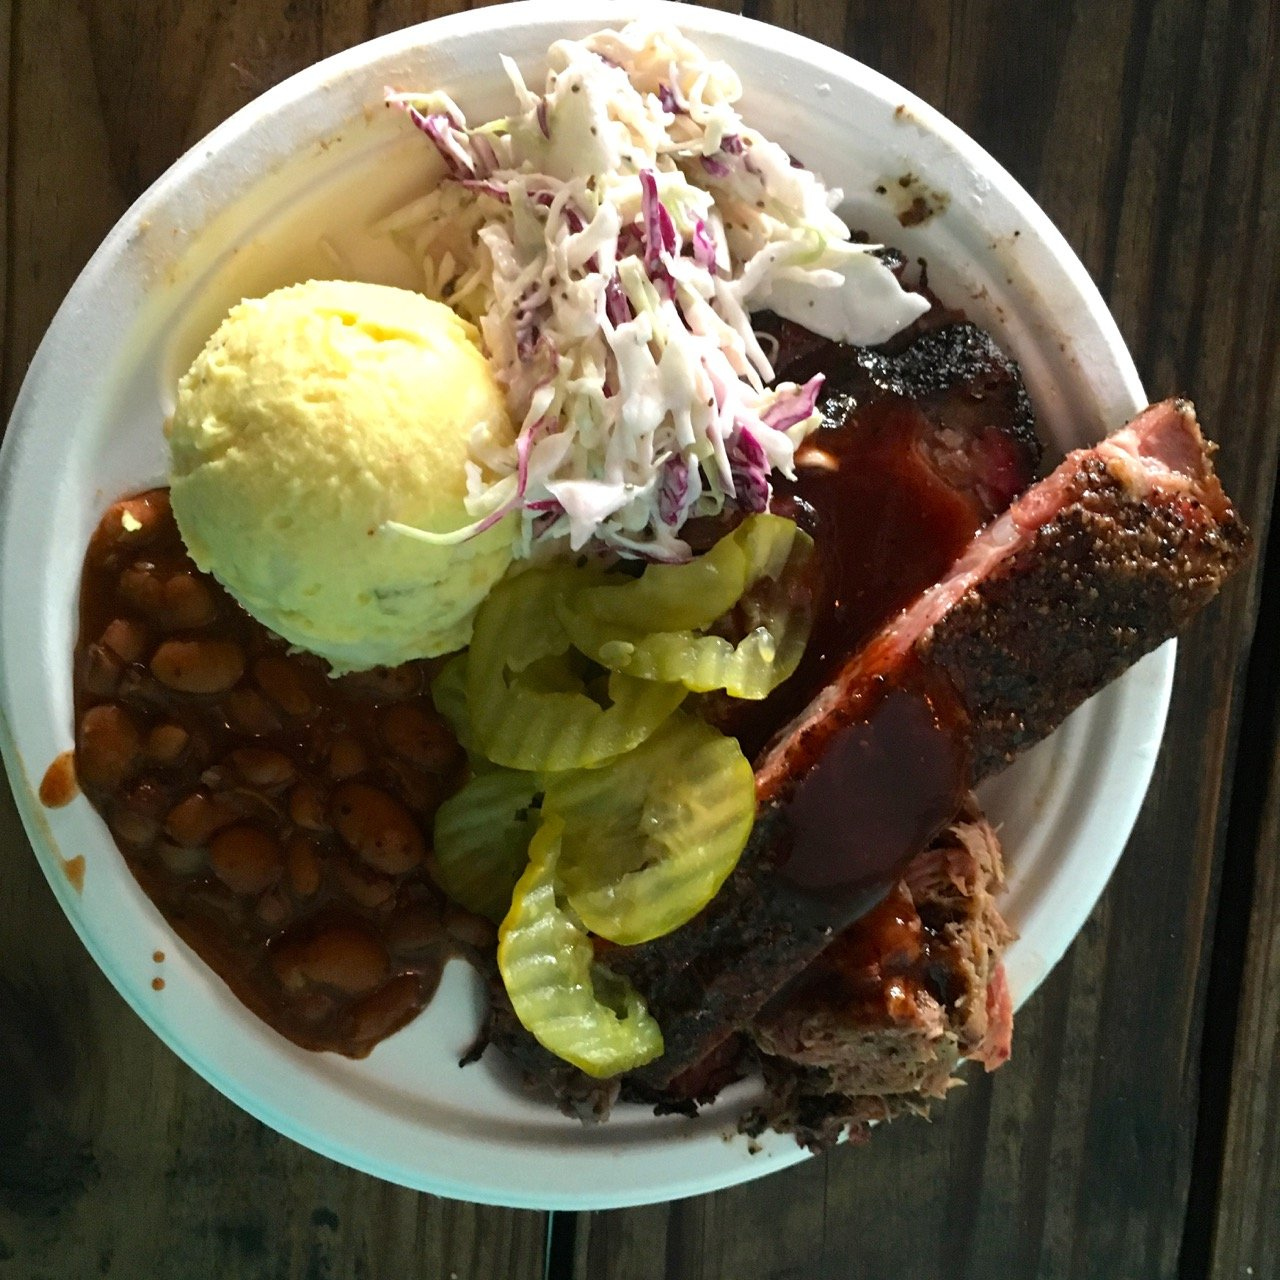 gluten free restaurants in central, east and south Austin - Franklin's BBQ